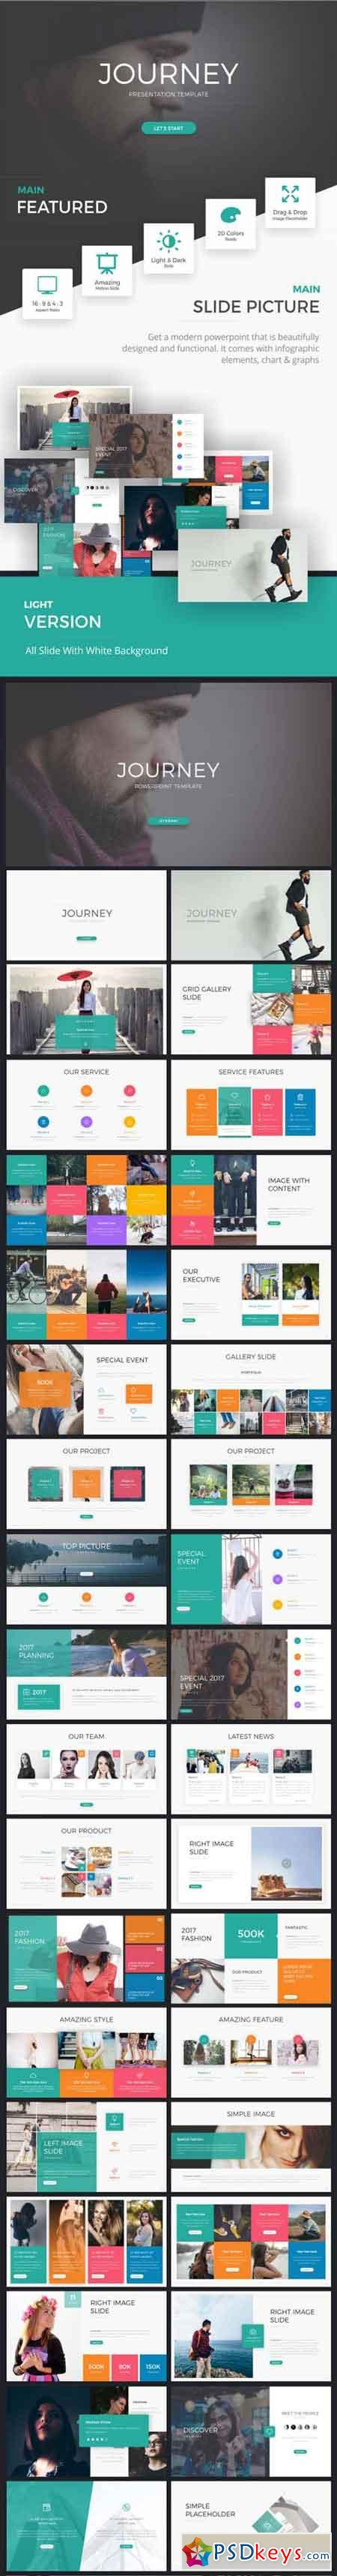 journey presentation template 19349511 » free download photoshop, Presentation templates